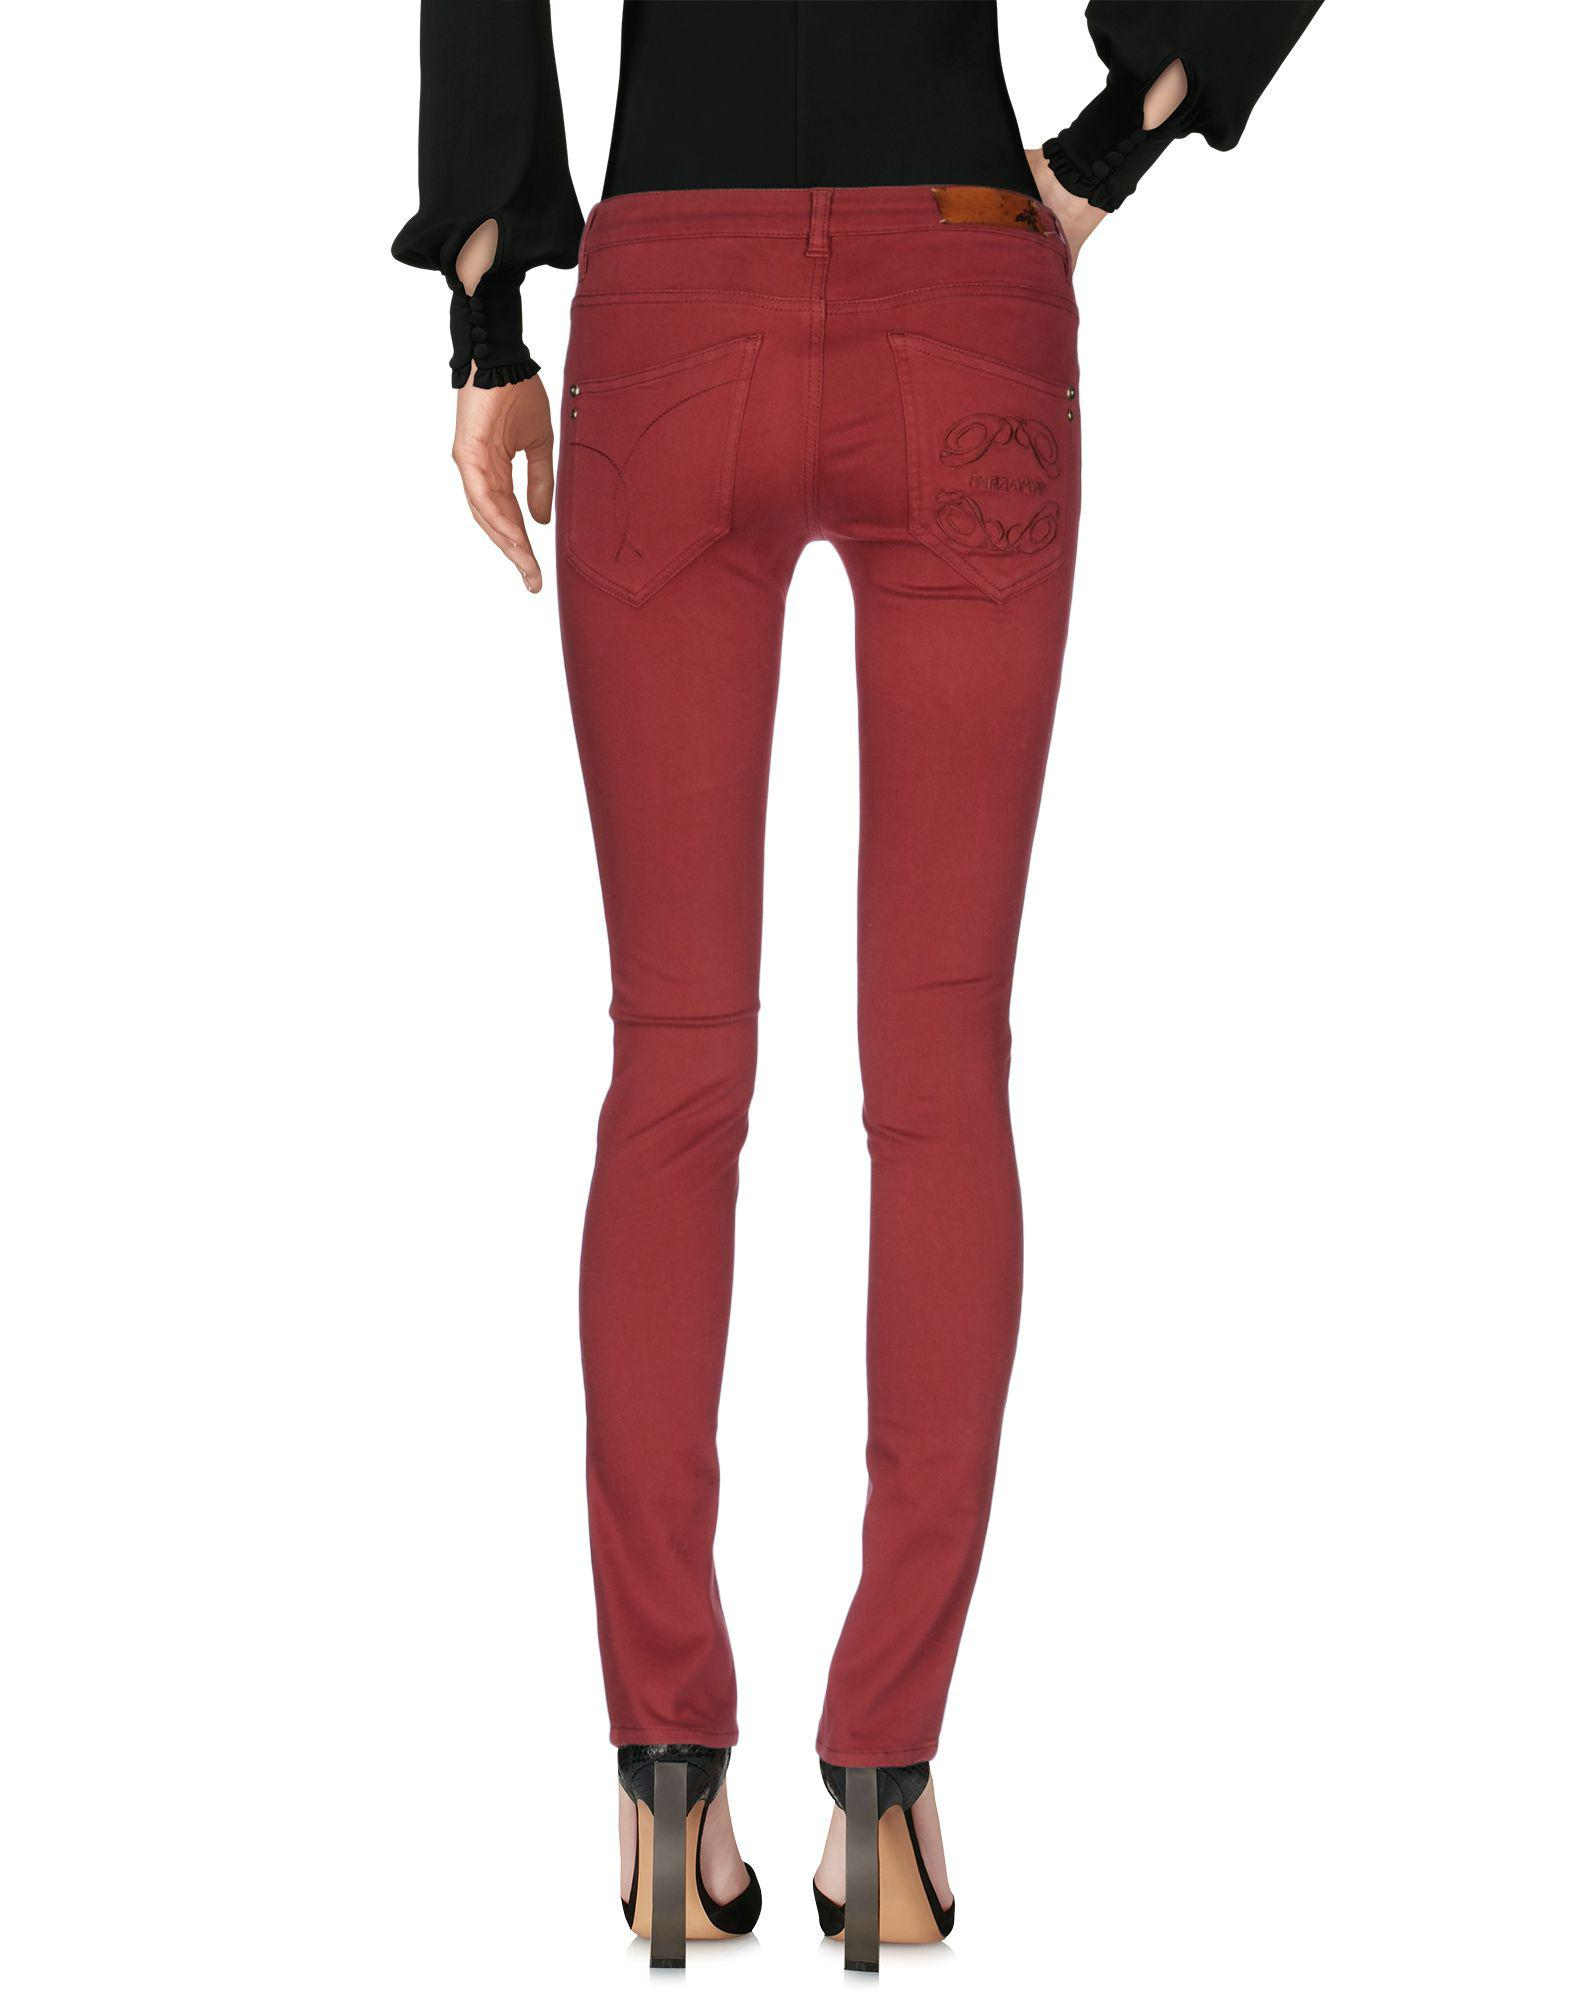 Pepe Jeans Cotton Casual Trouser in Maroon (Red)